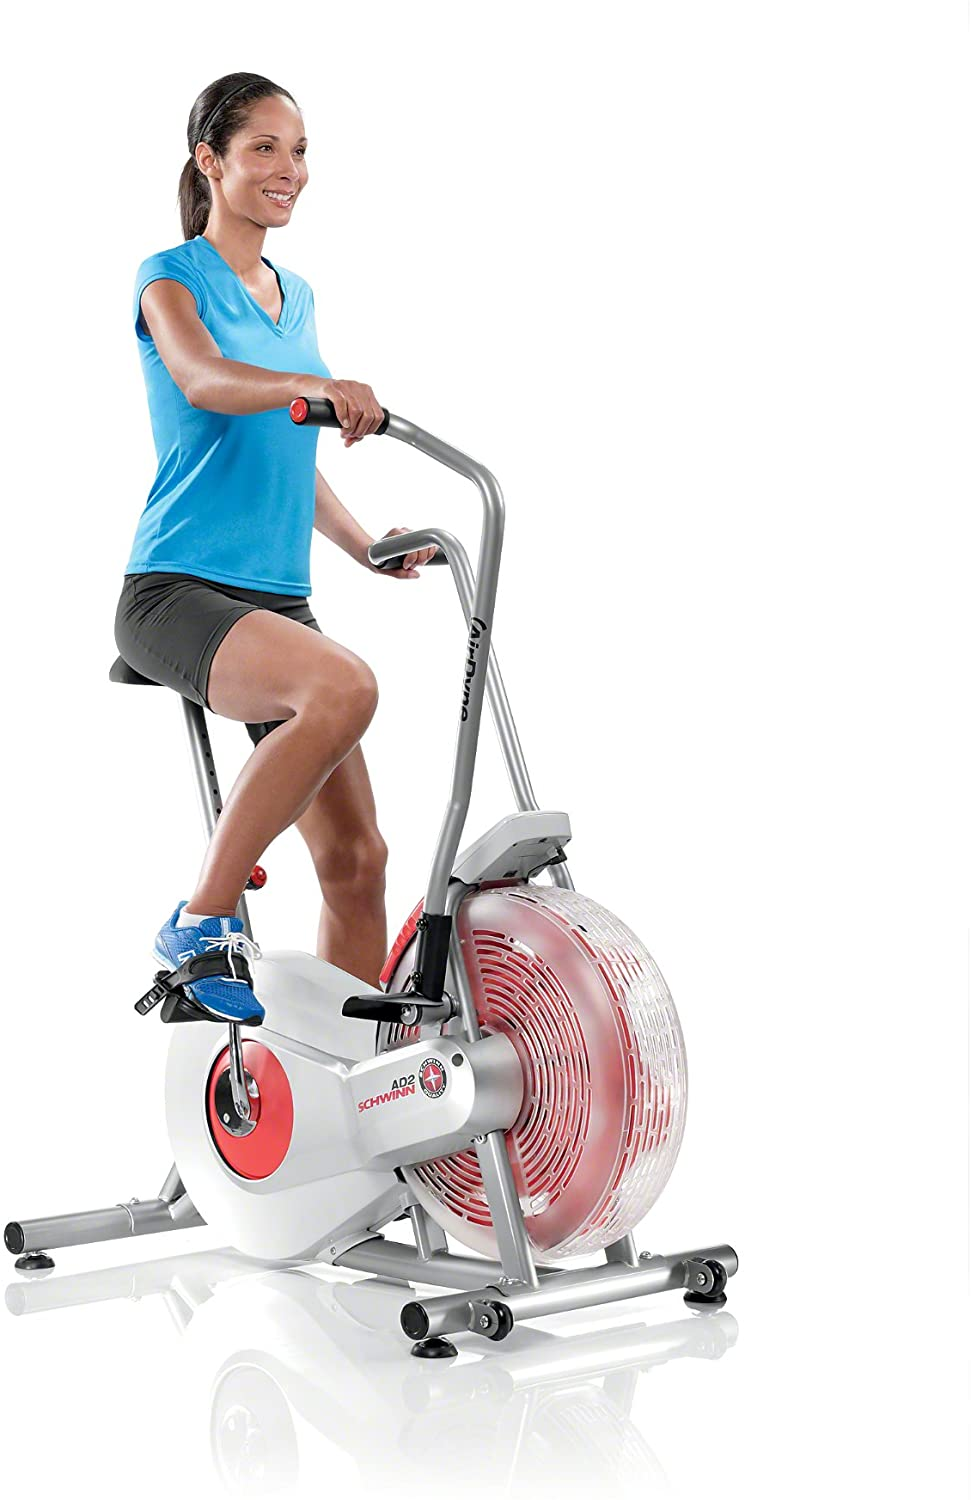 Schwinn AD2 Airdyne Exercise Bike With Moving Arms